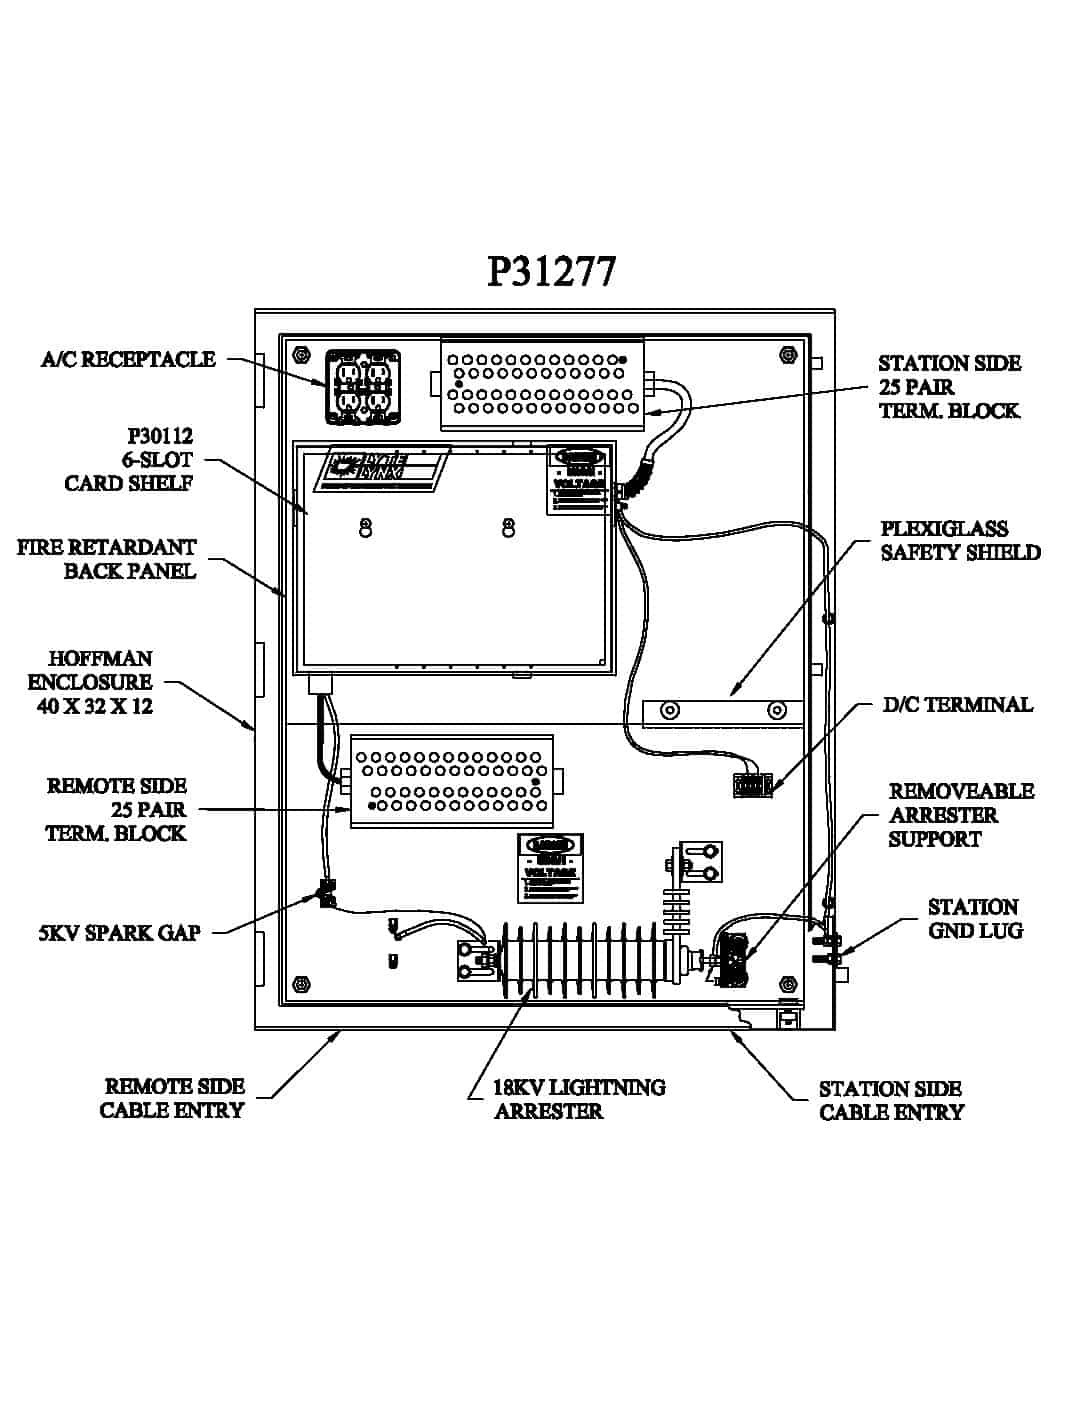 P31277 Turnkey Protection Packages – 6 slot PDF thumbnail